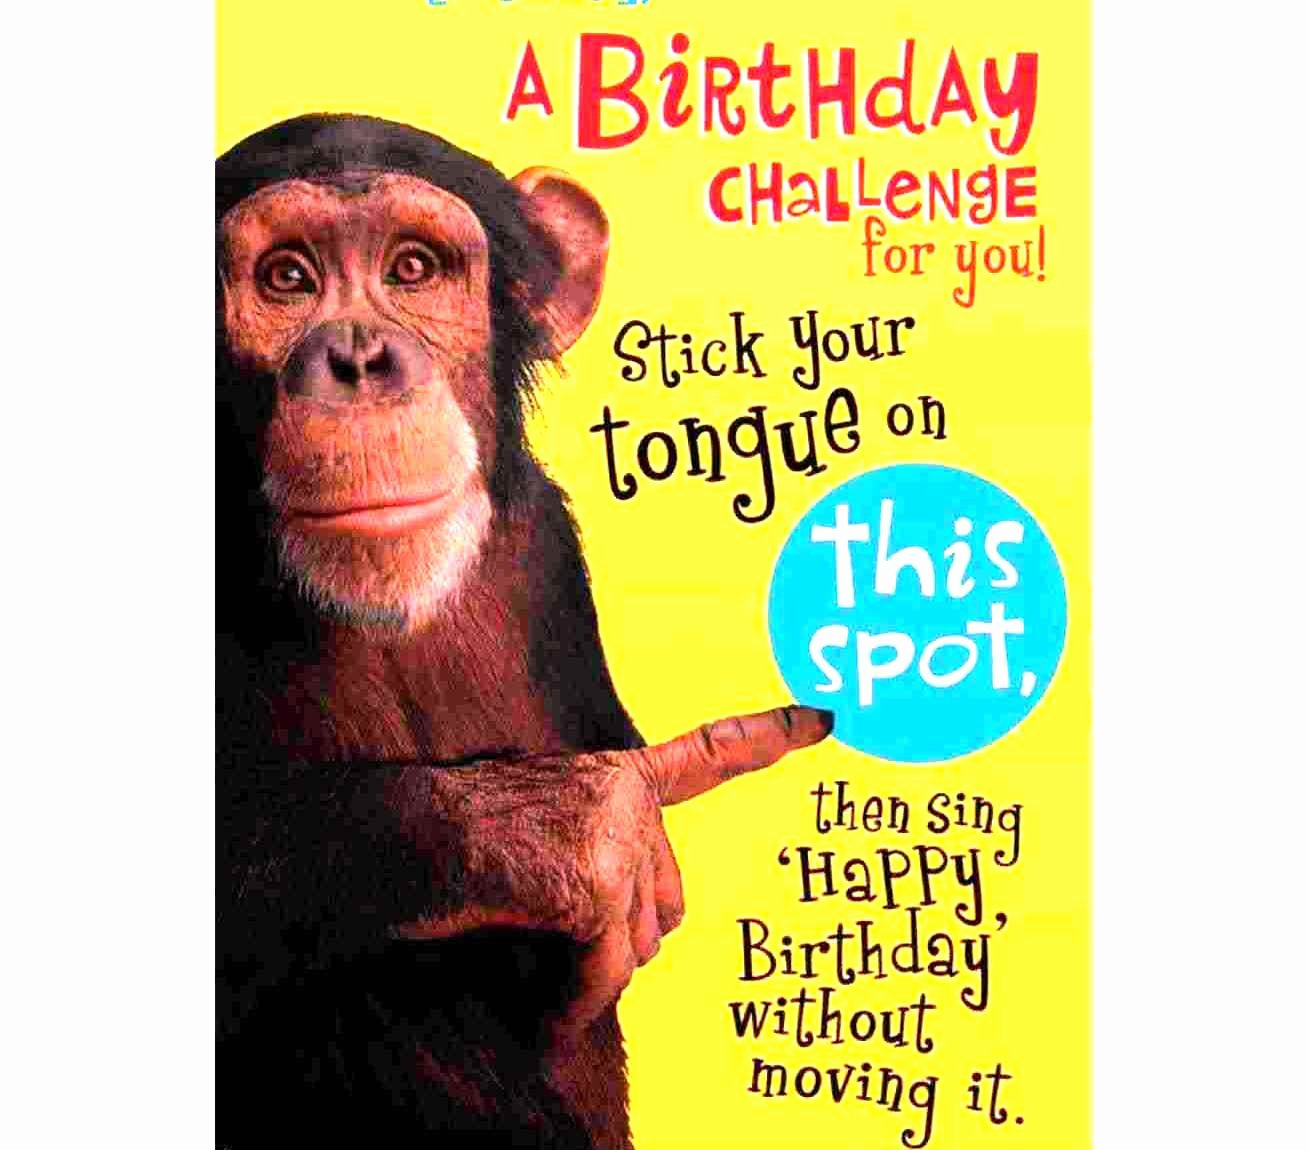 Printable Funny Birthday Cards Lovely Free Printable Funny Birthday Cards for Men Template